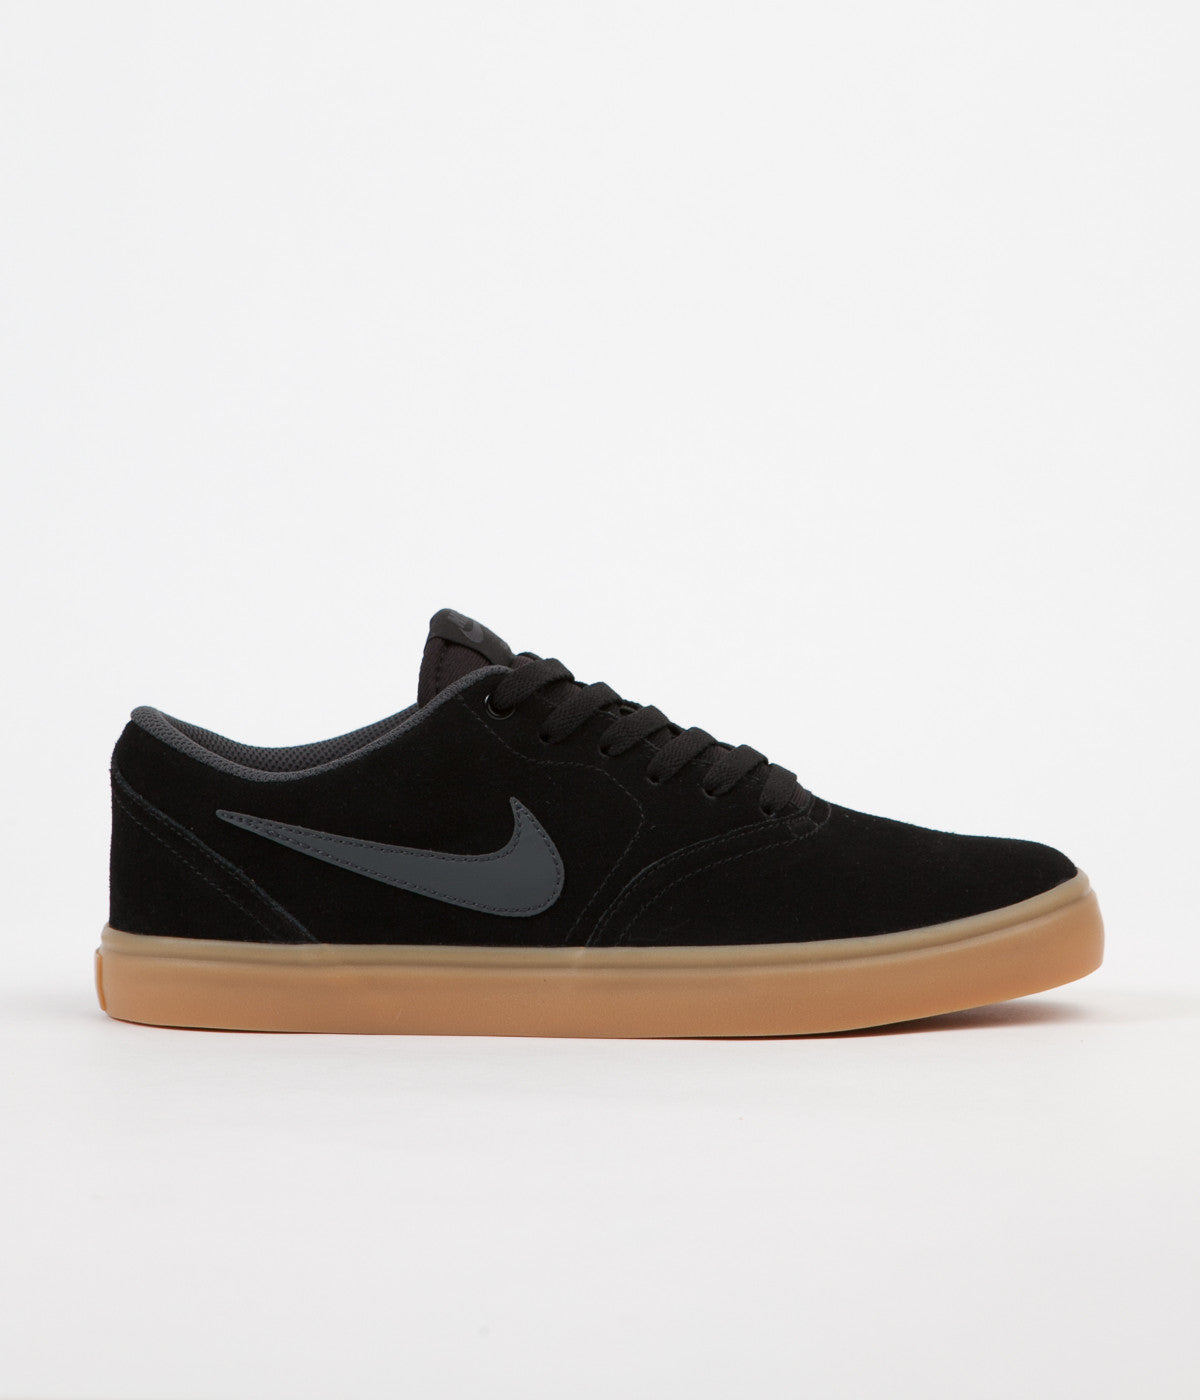 094762228914 Nike SB Check Solarsoft Shoes - Black   Anthracite - Gum Dark Brown ...